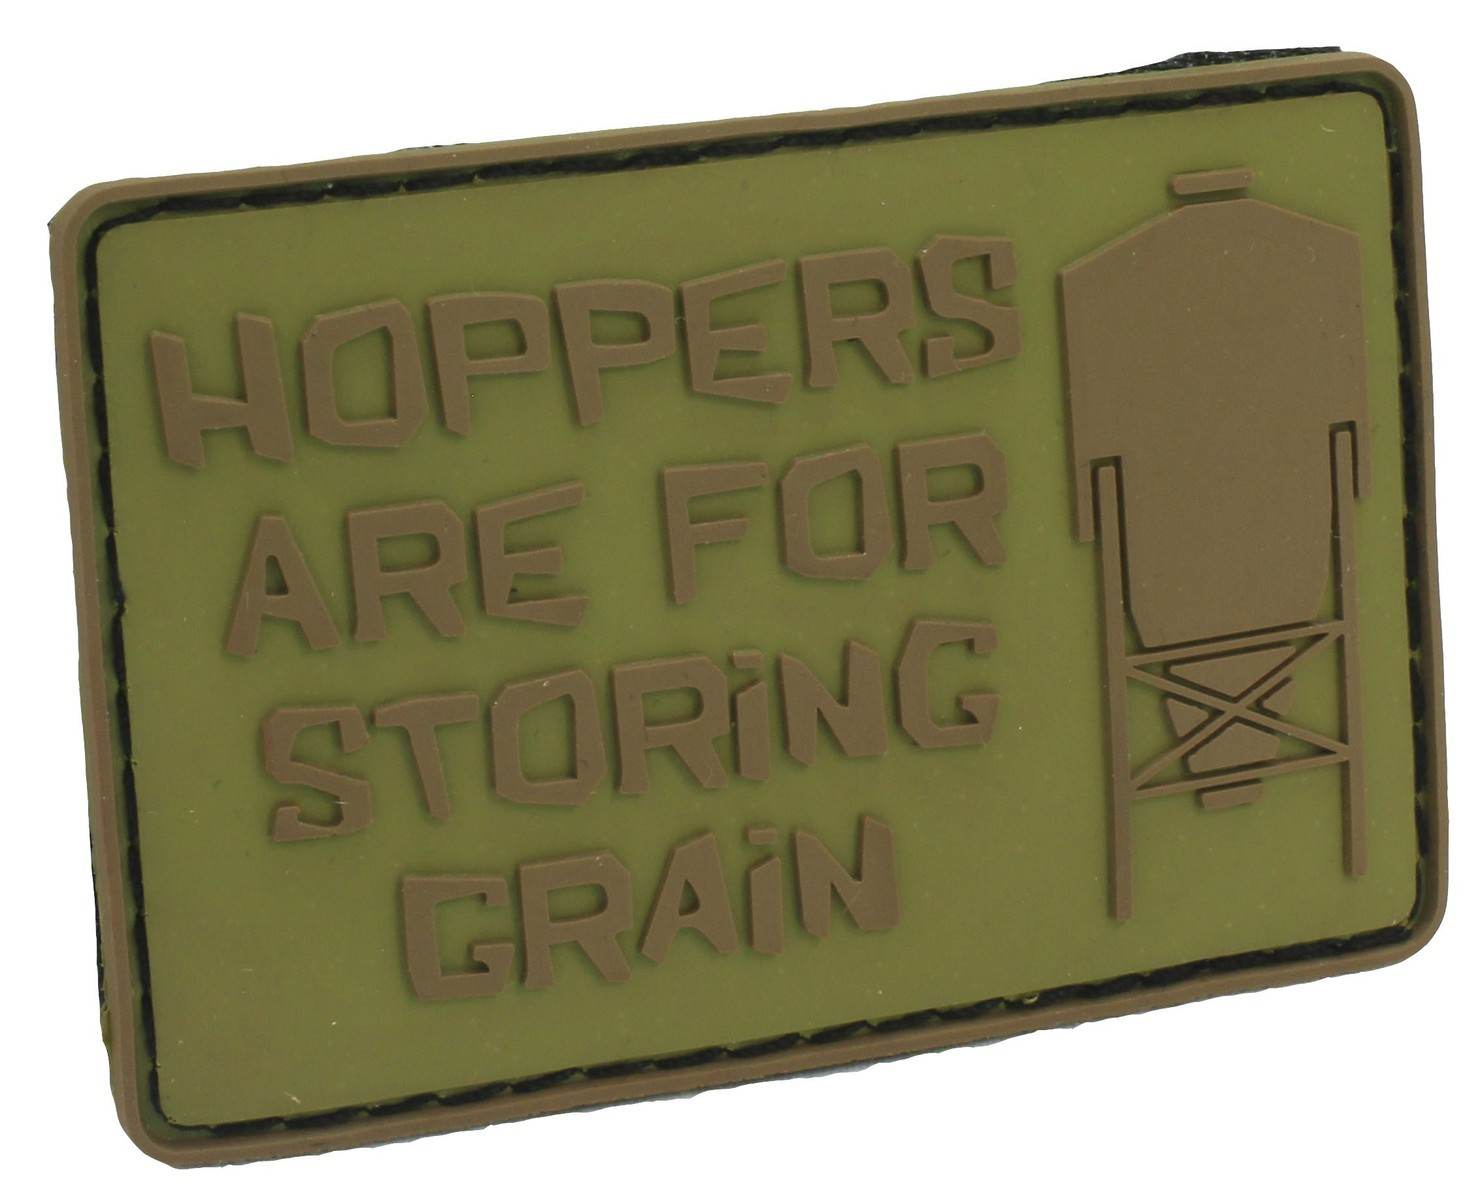 Patch Hoppers Are For Storing Grain (Tan)